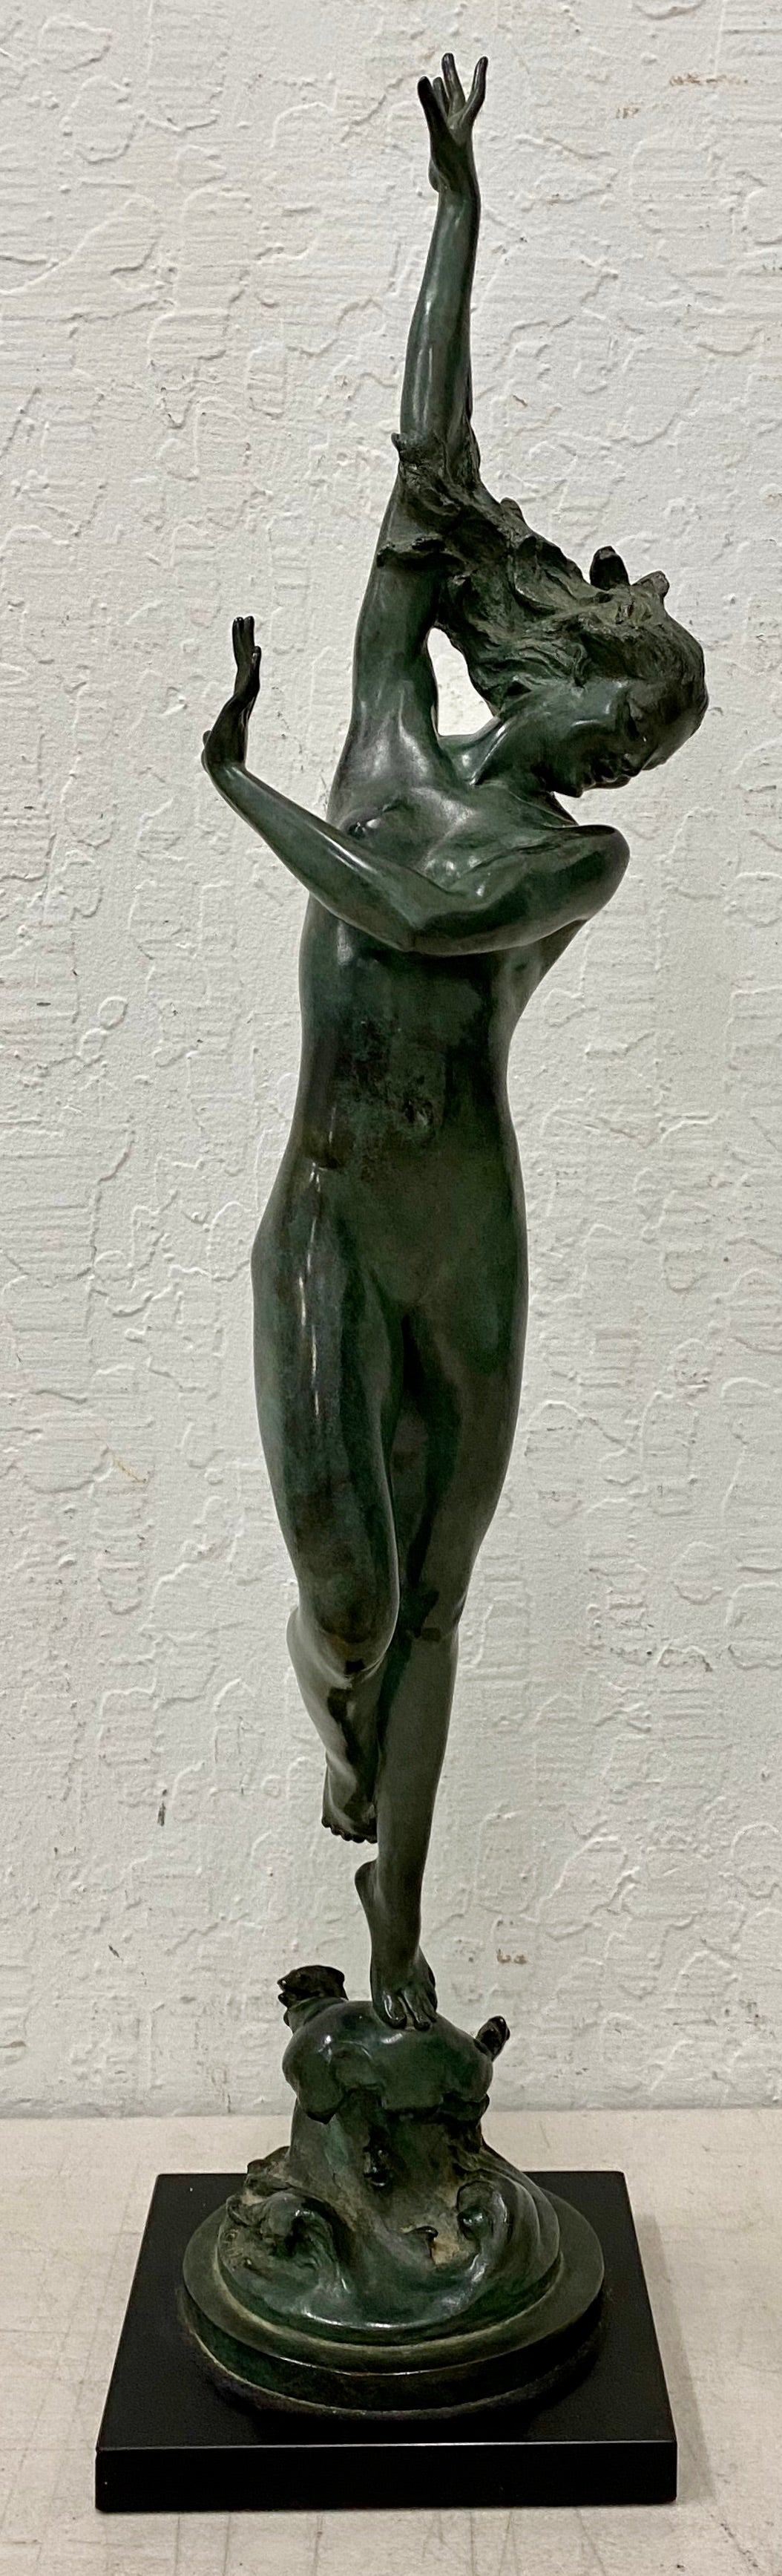 Pierre Chenet - Pair of Nude Women Statues at 1stDibs